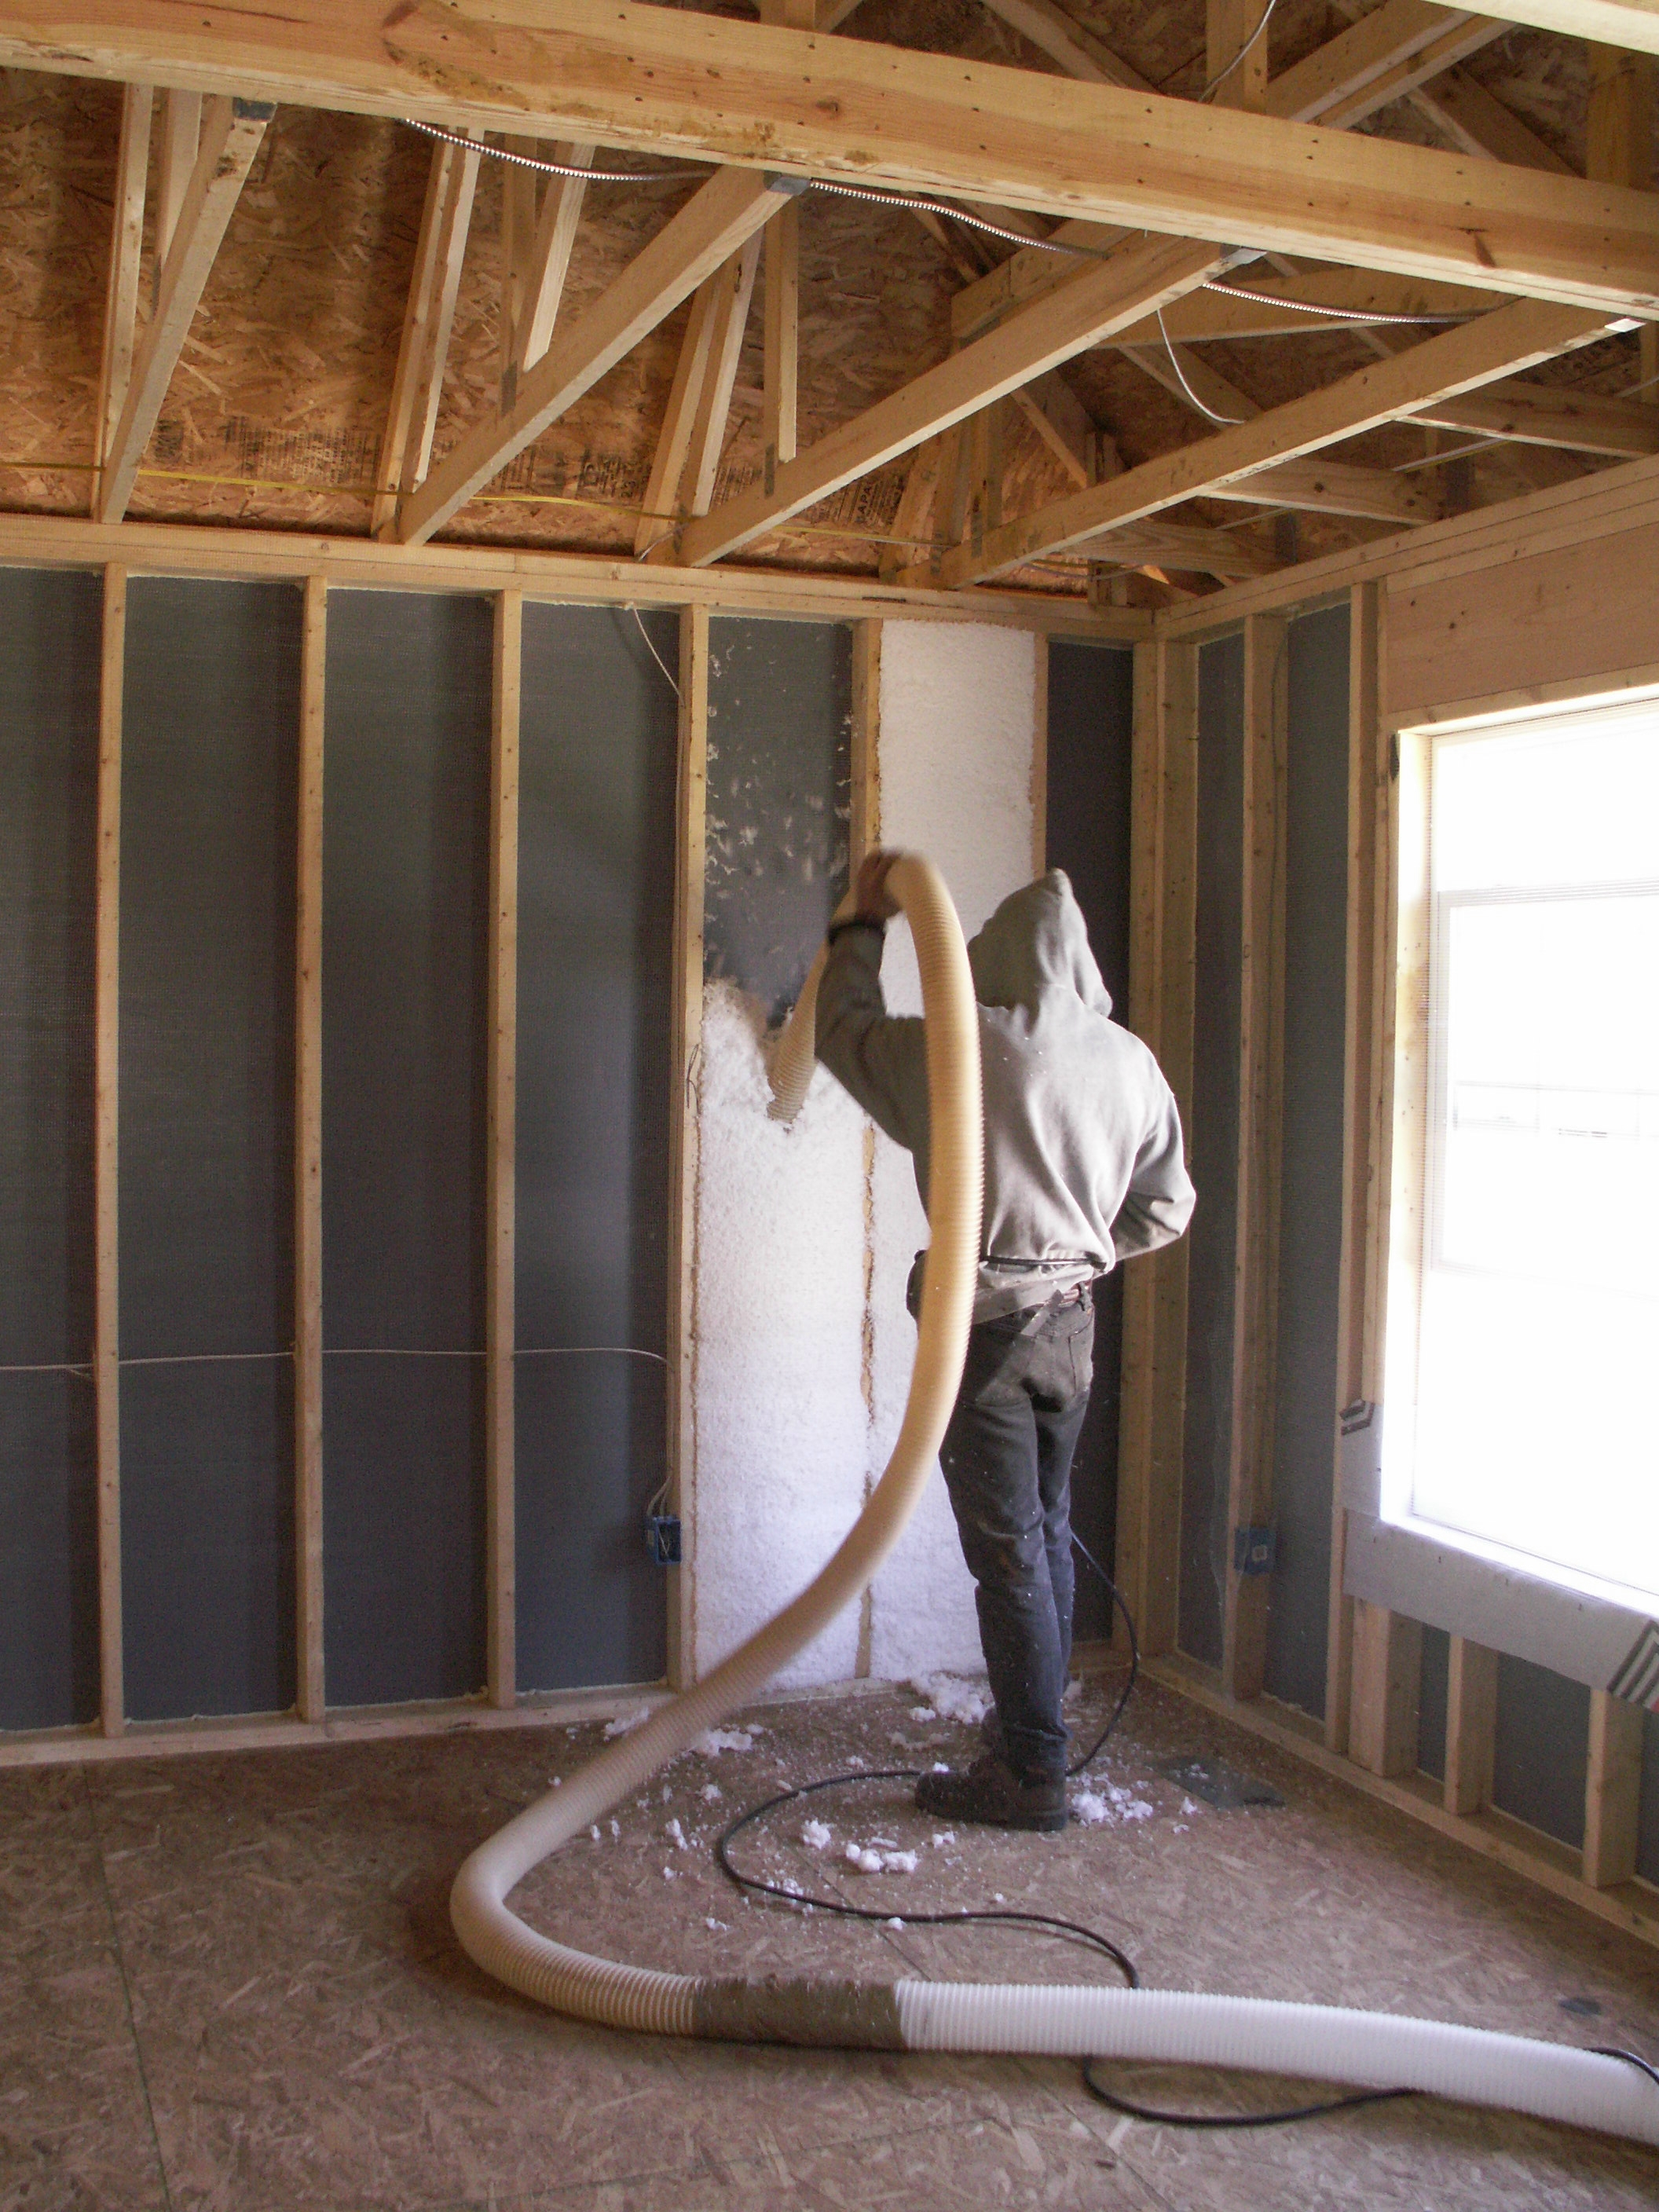 Blown fiberglass insulation fills netted wall cavities